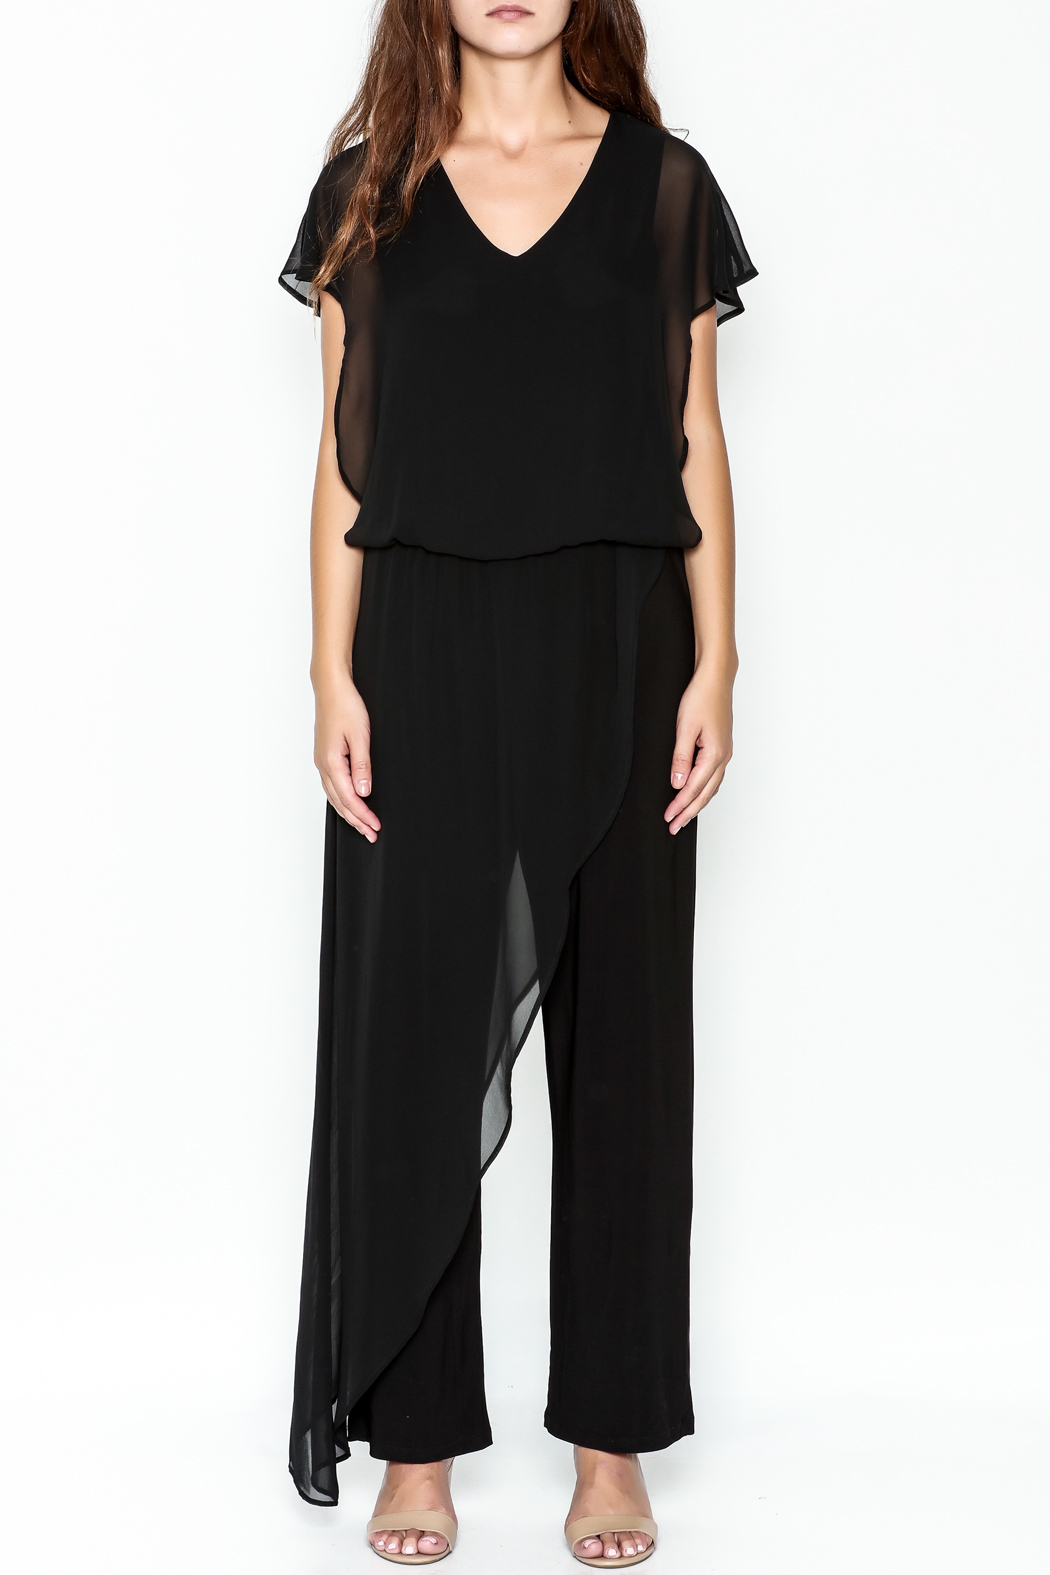 Talk of the Walk Sheer Overlay Jumpsuit - Front Full Image